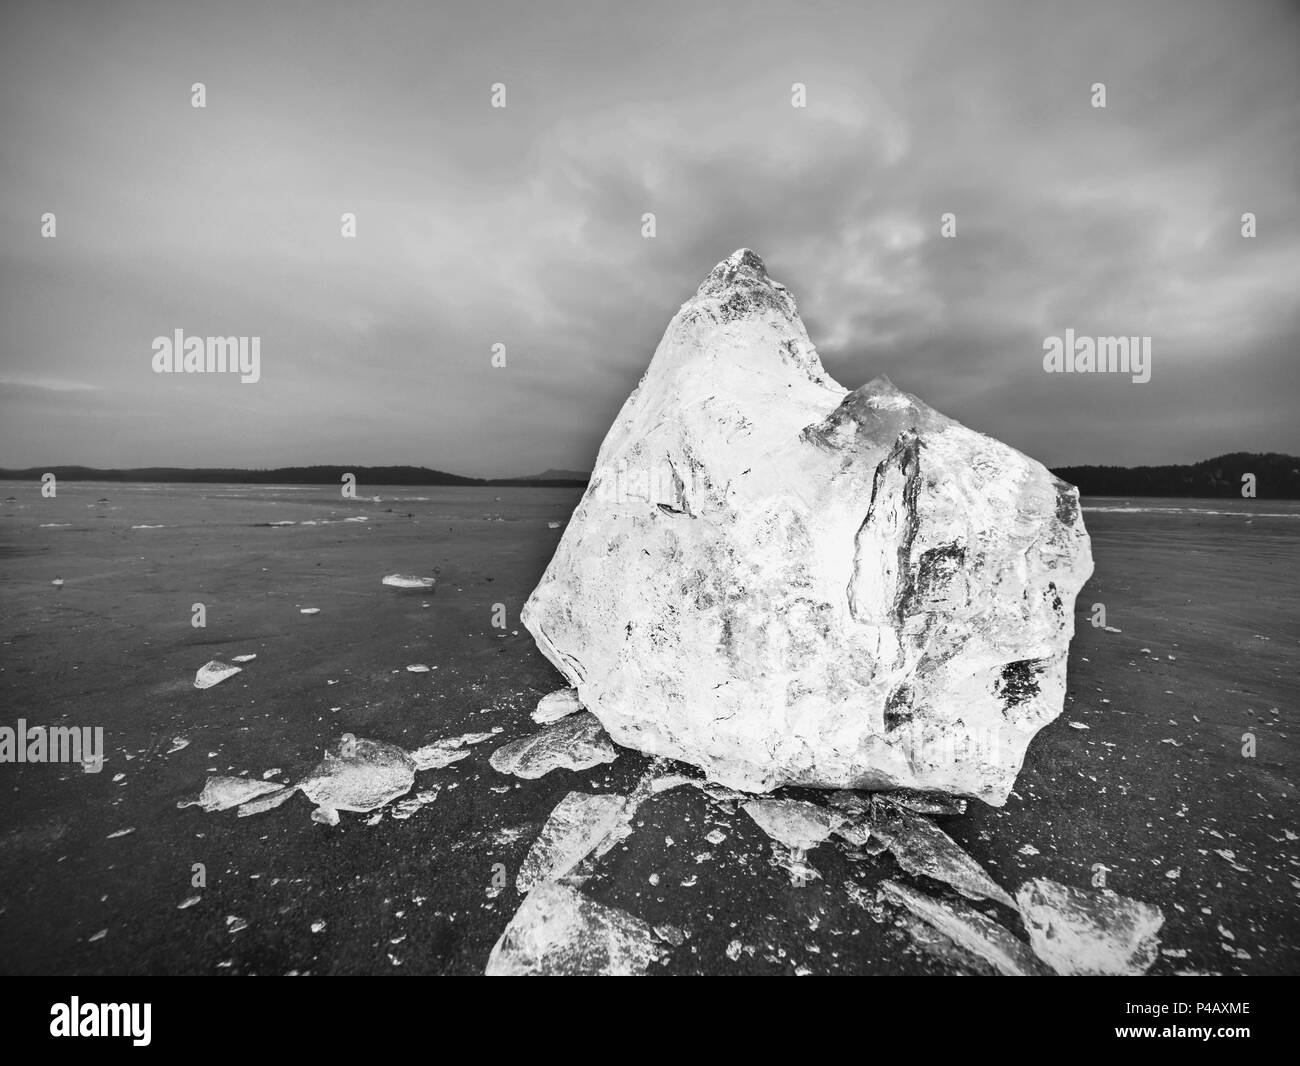 Blocks of shining ice and snow on the shore. The floes and crushed ice  during the evening and dark  hours when the ice at sea breaks up. - Stock Image